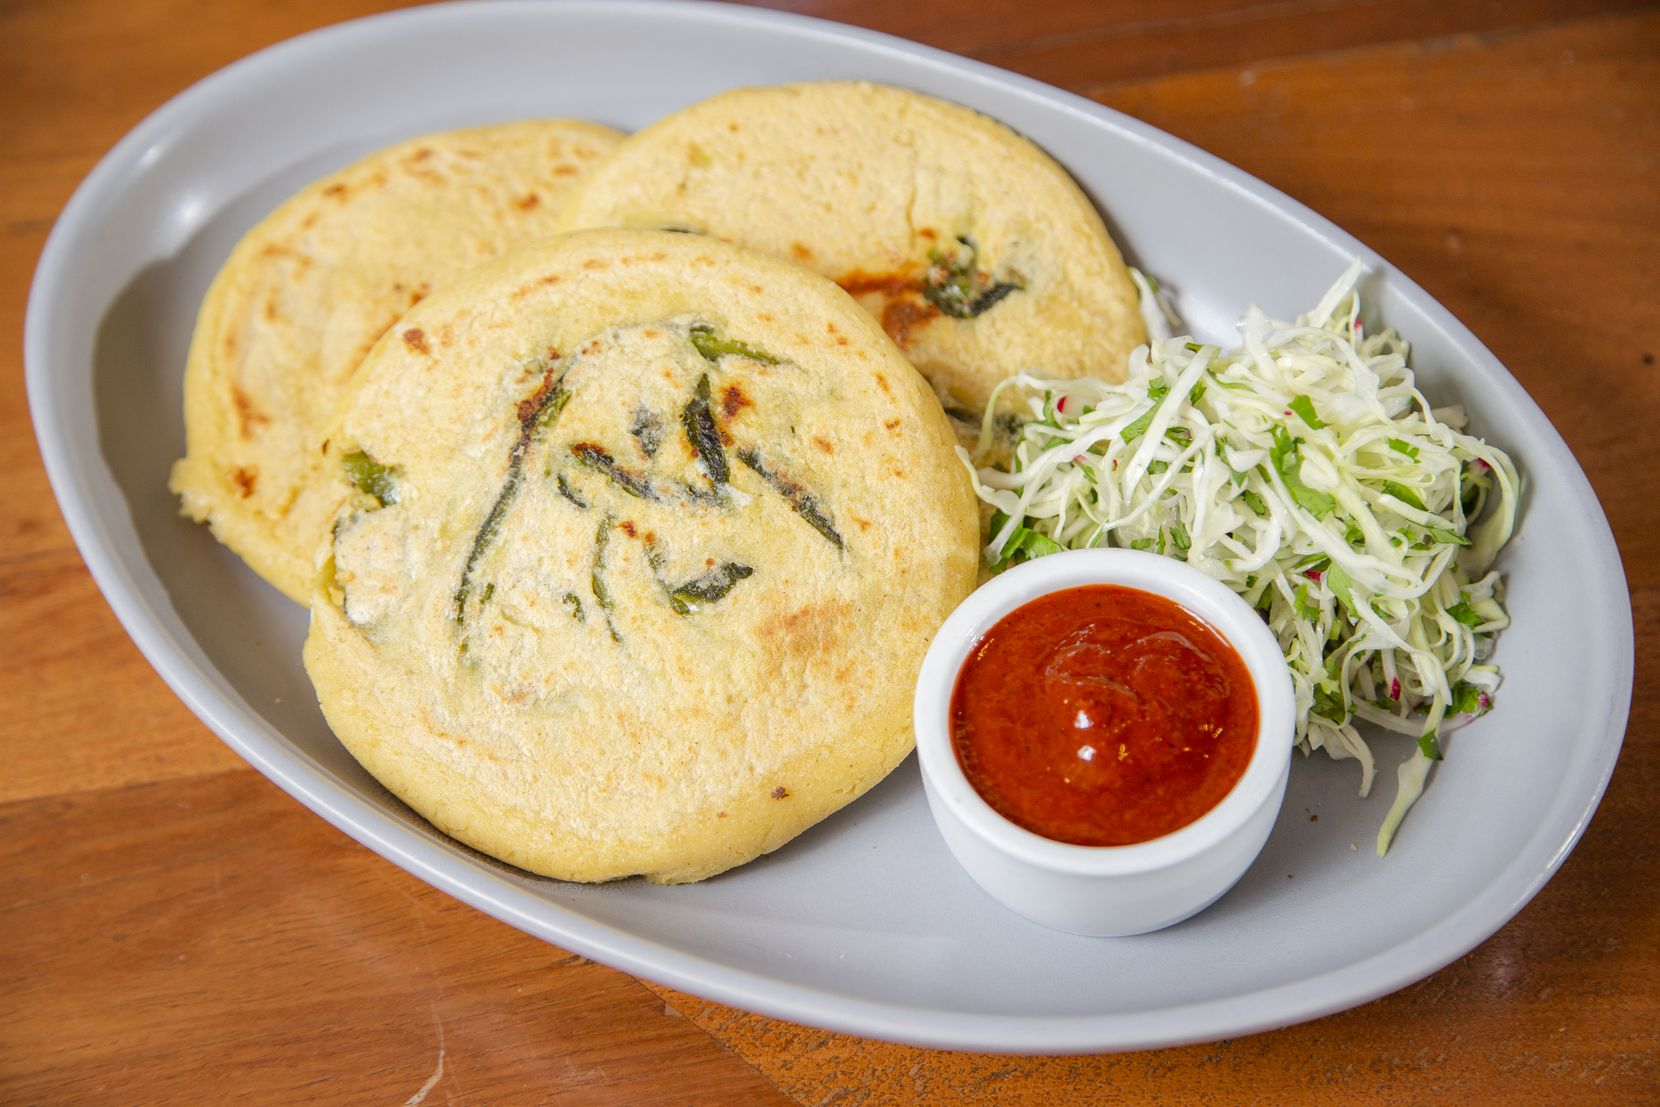 A plate of pupusas at Jose restaurant in Dallas, Tuesday, November 24, 2020. (Brandon Wade/Special Contributor)